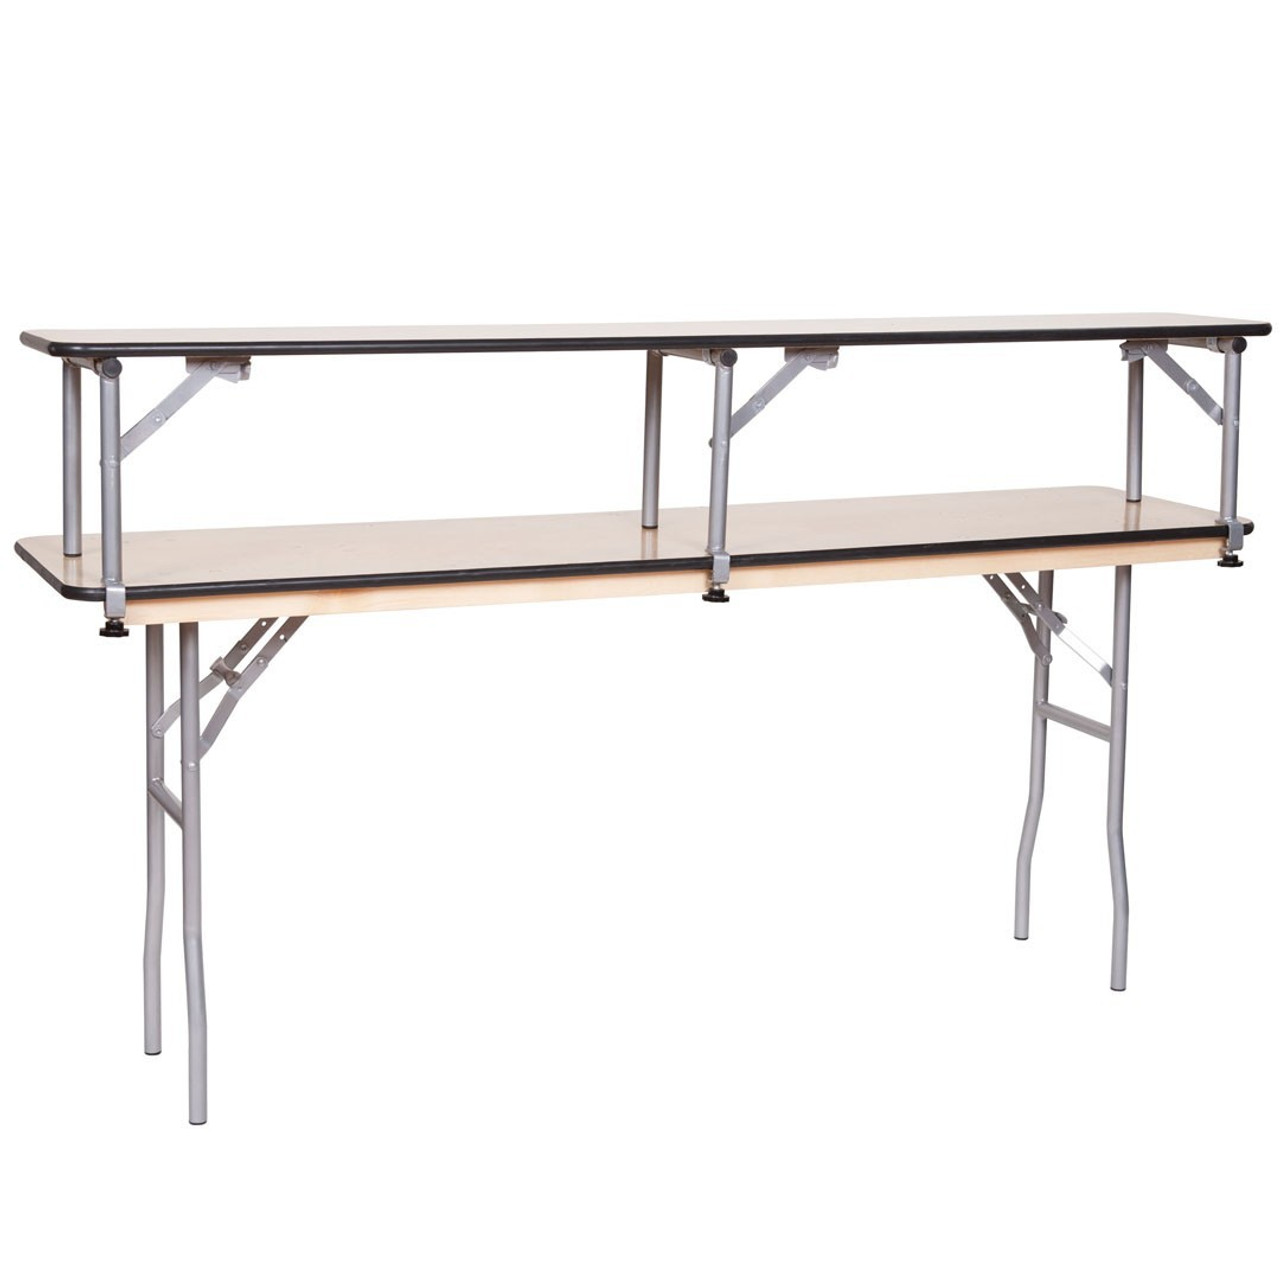 ... 6FT Portable Bar Top Riser Bundle   Includes Table, Riser, Skirting,  And Clips ...